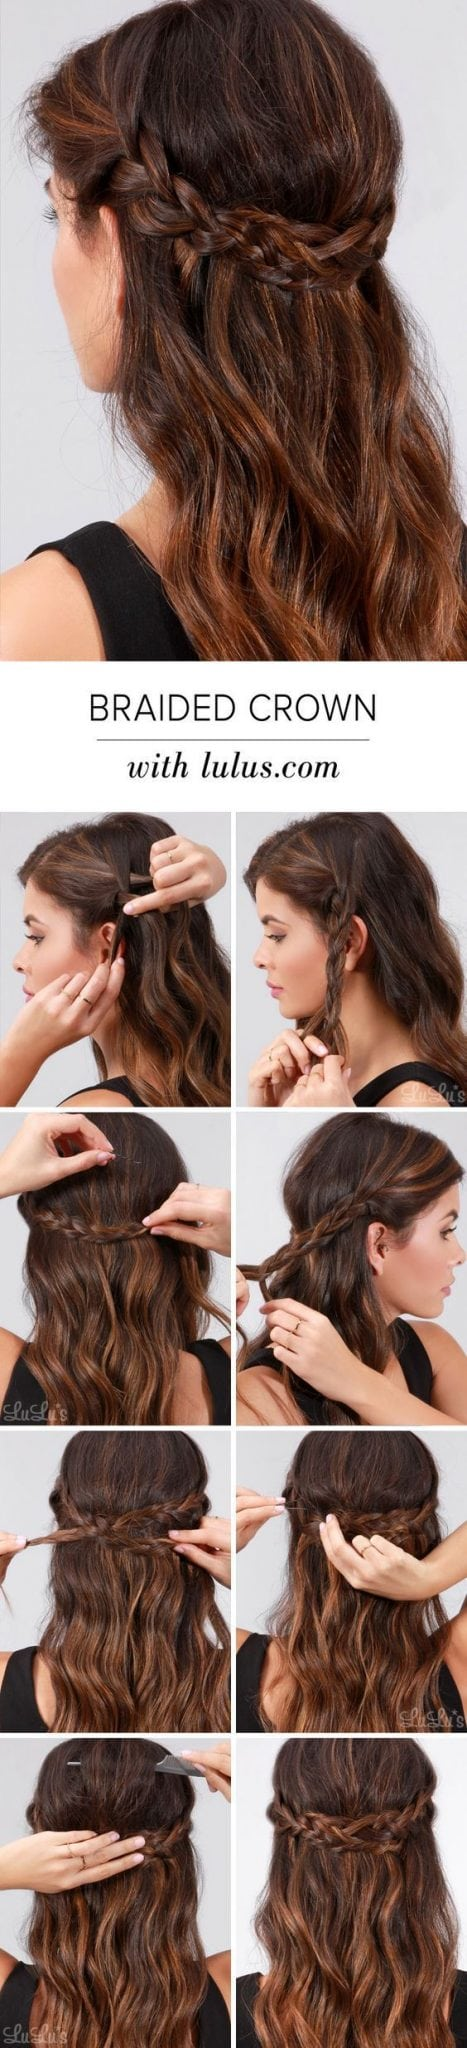 45 Step by Step Hair Tutorials For The Beauties In Town! – Page 6 of 6 – Trend To Wear Source by 17Muisje92   …